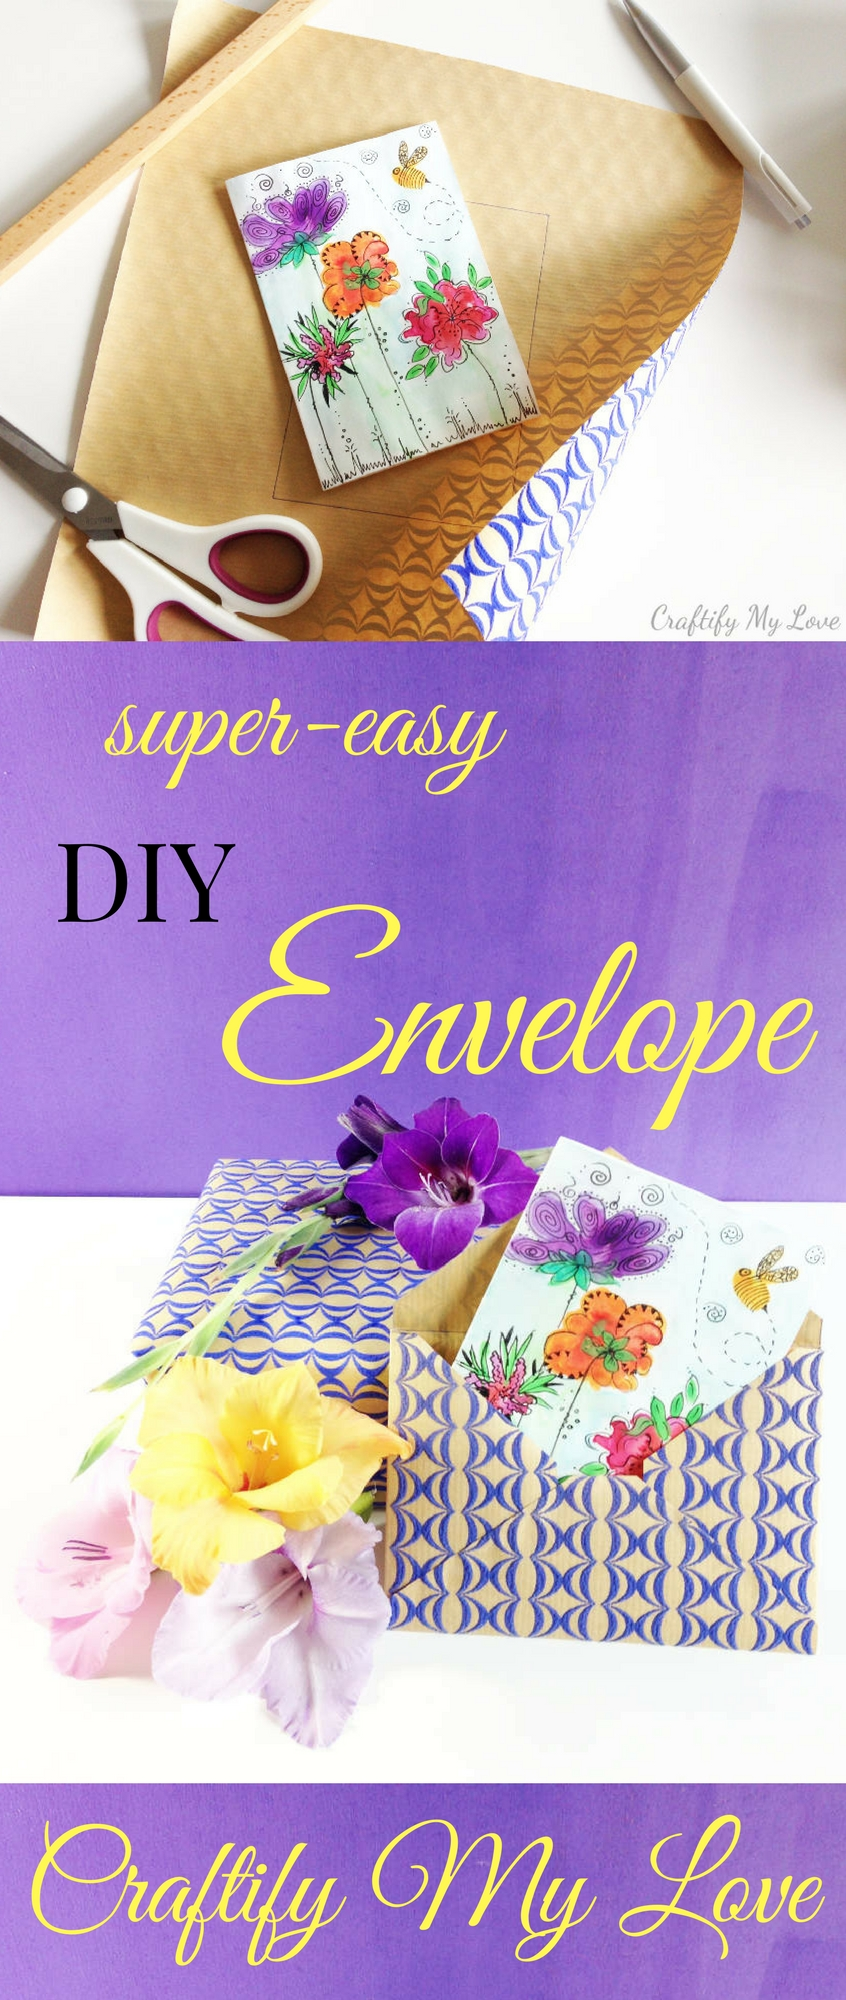 Learn how to make an envelope all by yourself using gift wrapping paper. Click for easy tutorial.